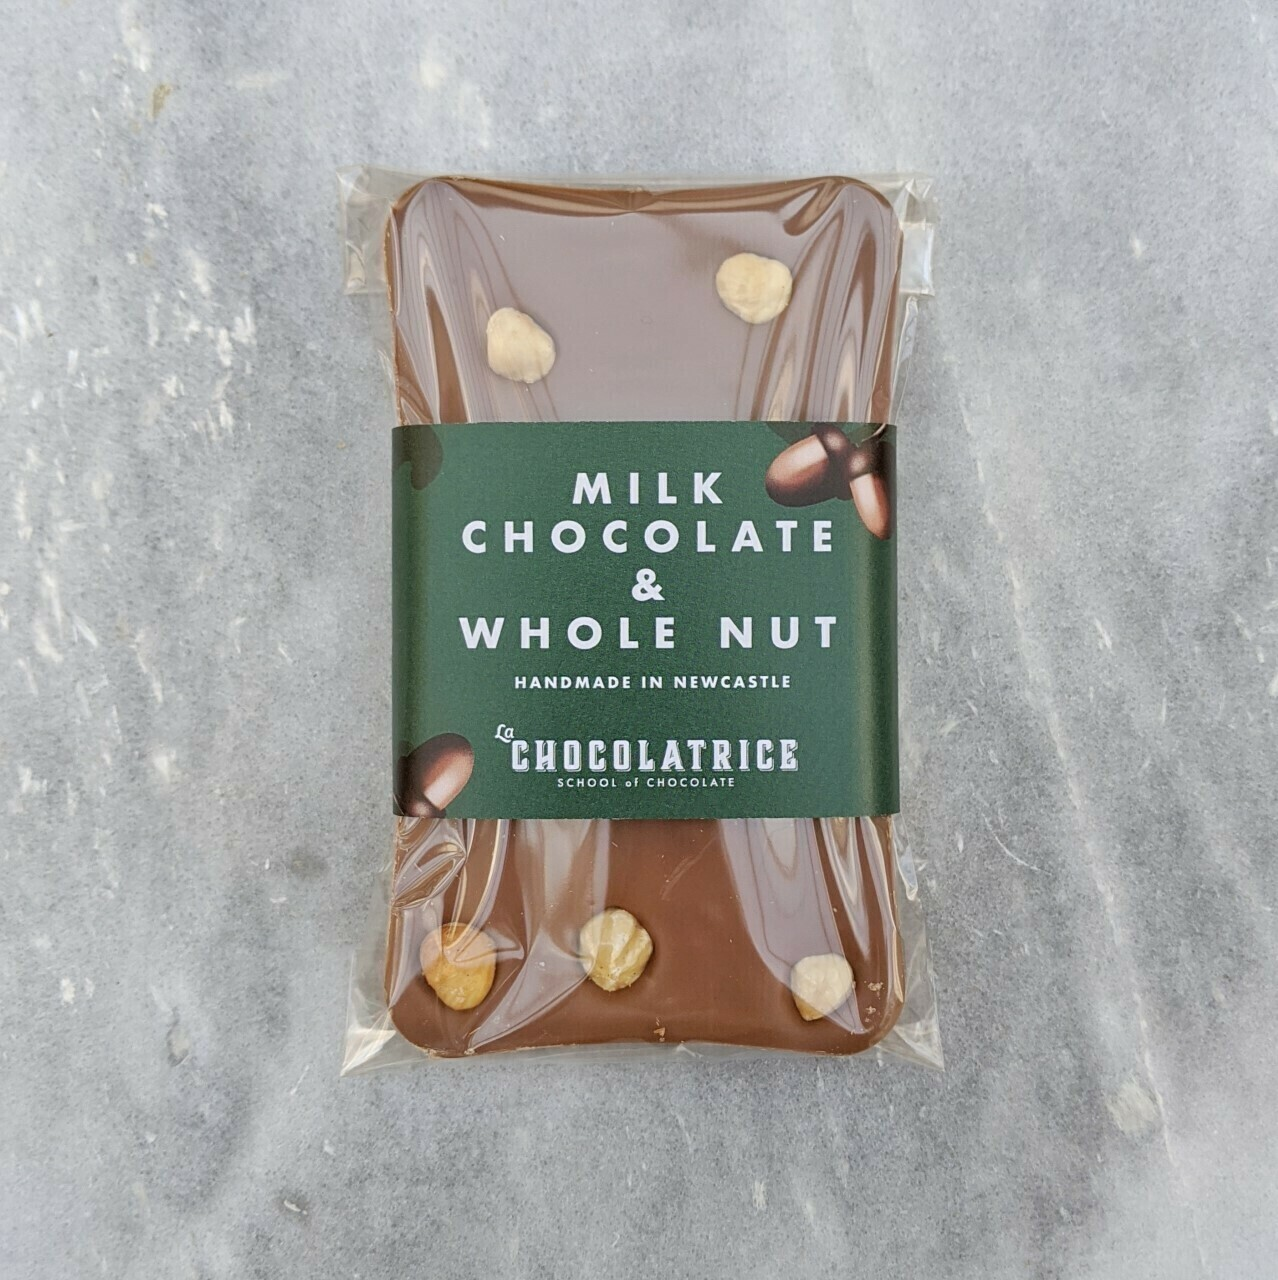 Milk Chocolate and Whole Nut